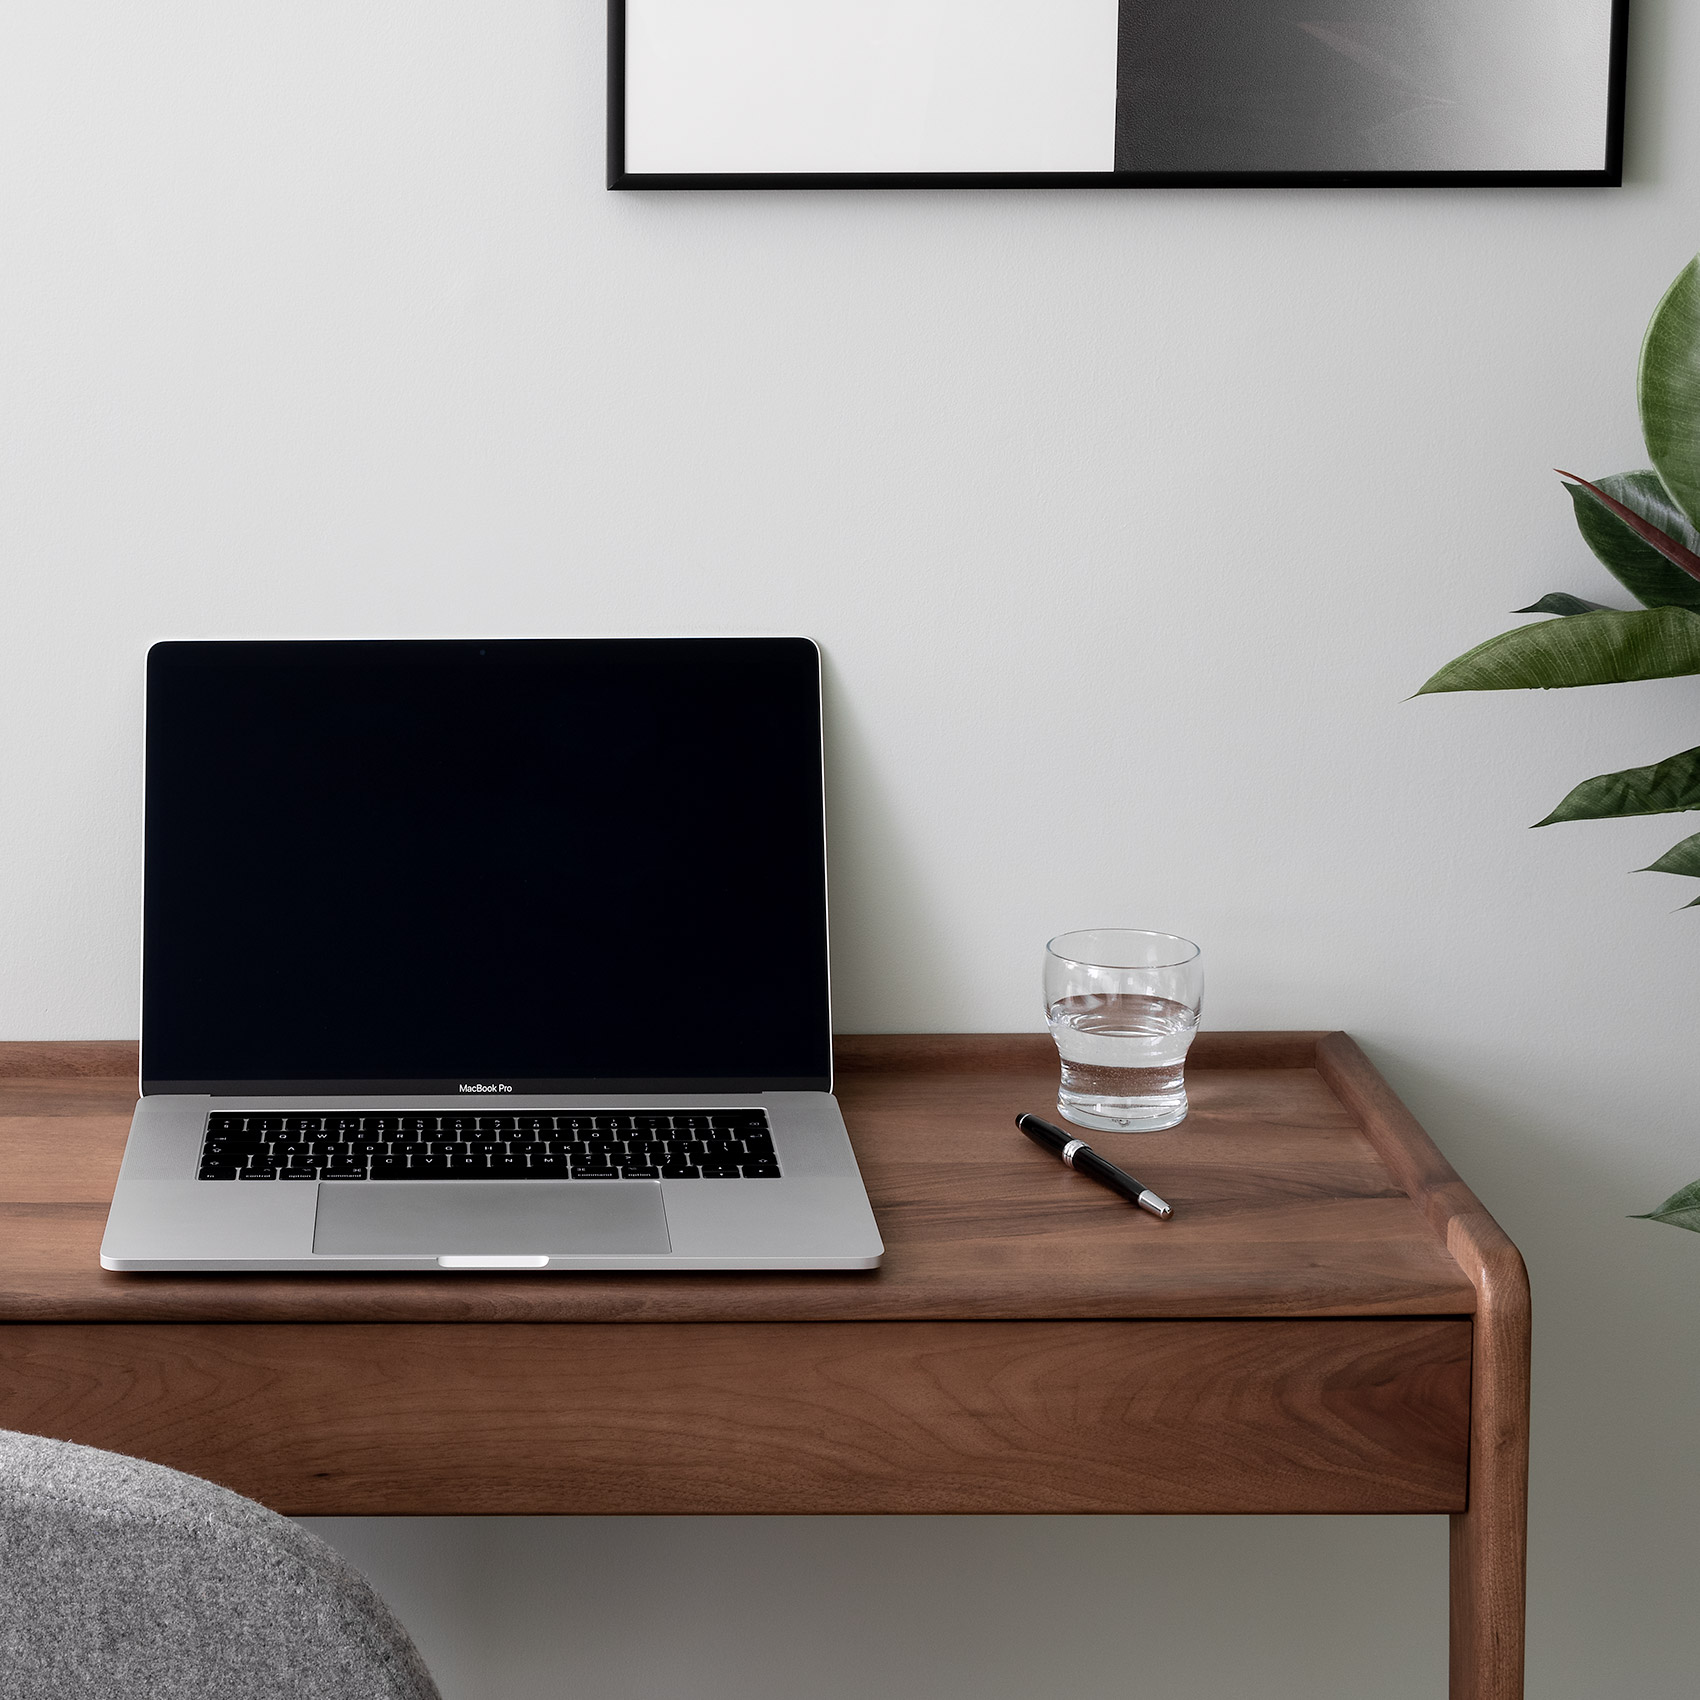 Walnut desk, macbook pro, grey wool chair and rubber plant